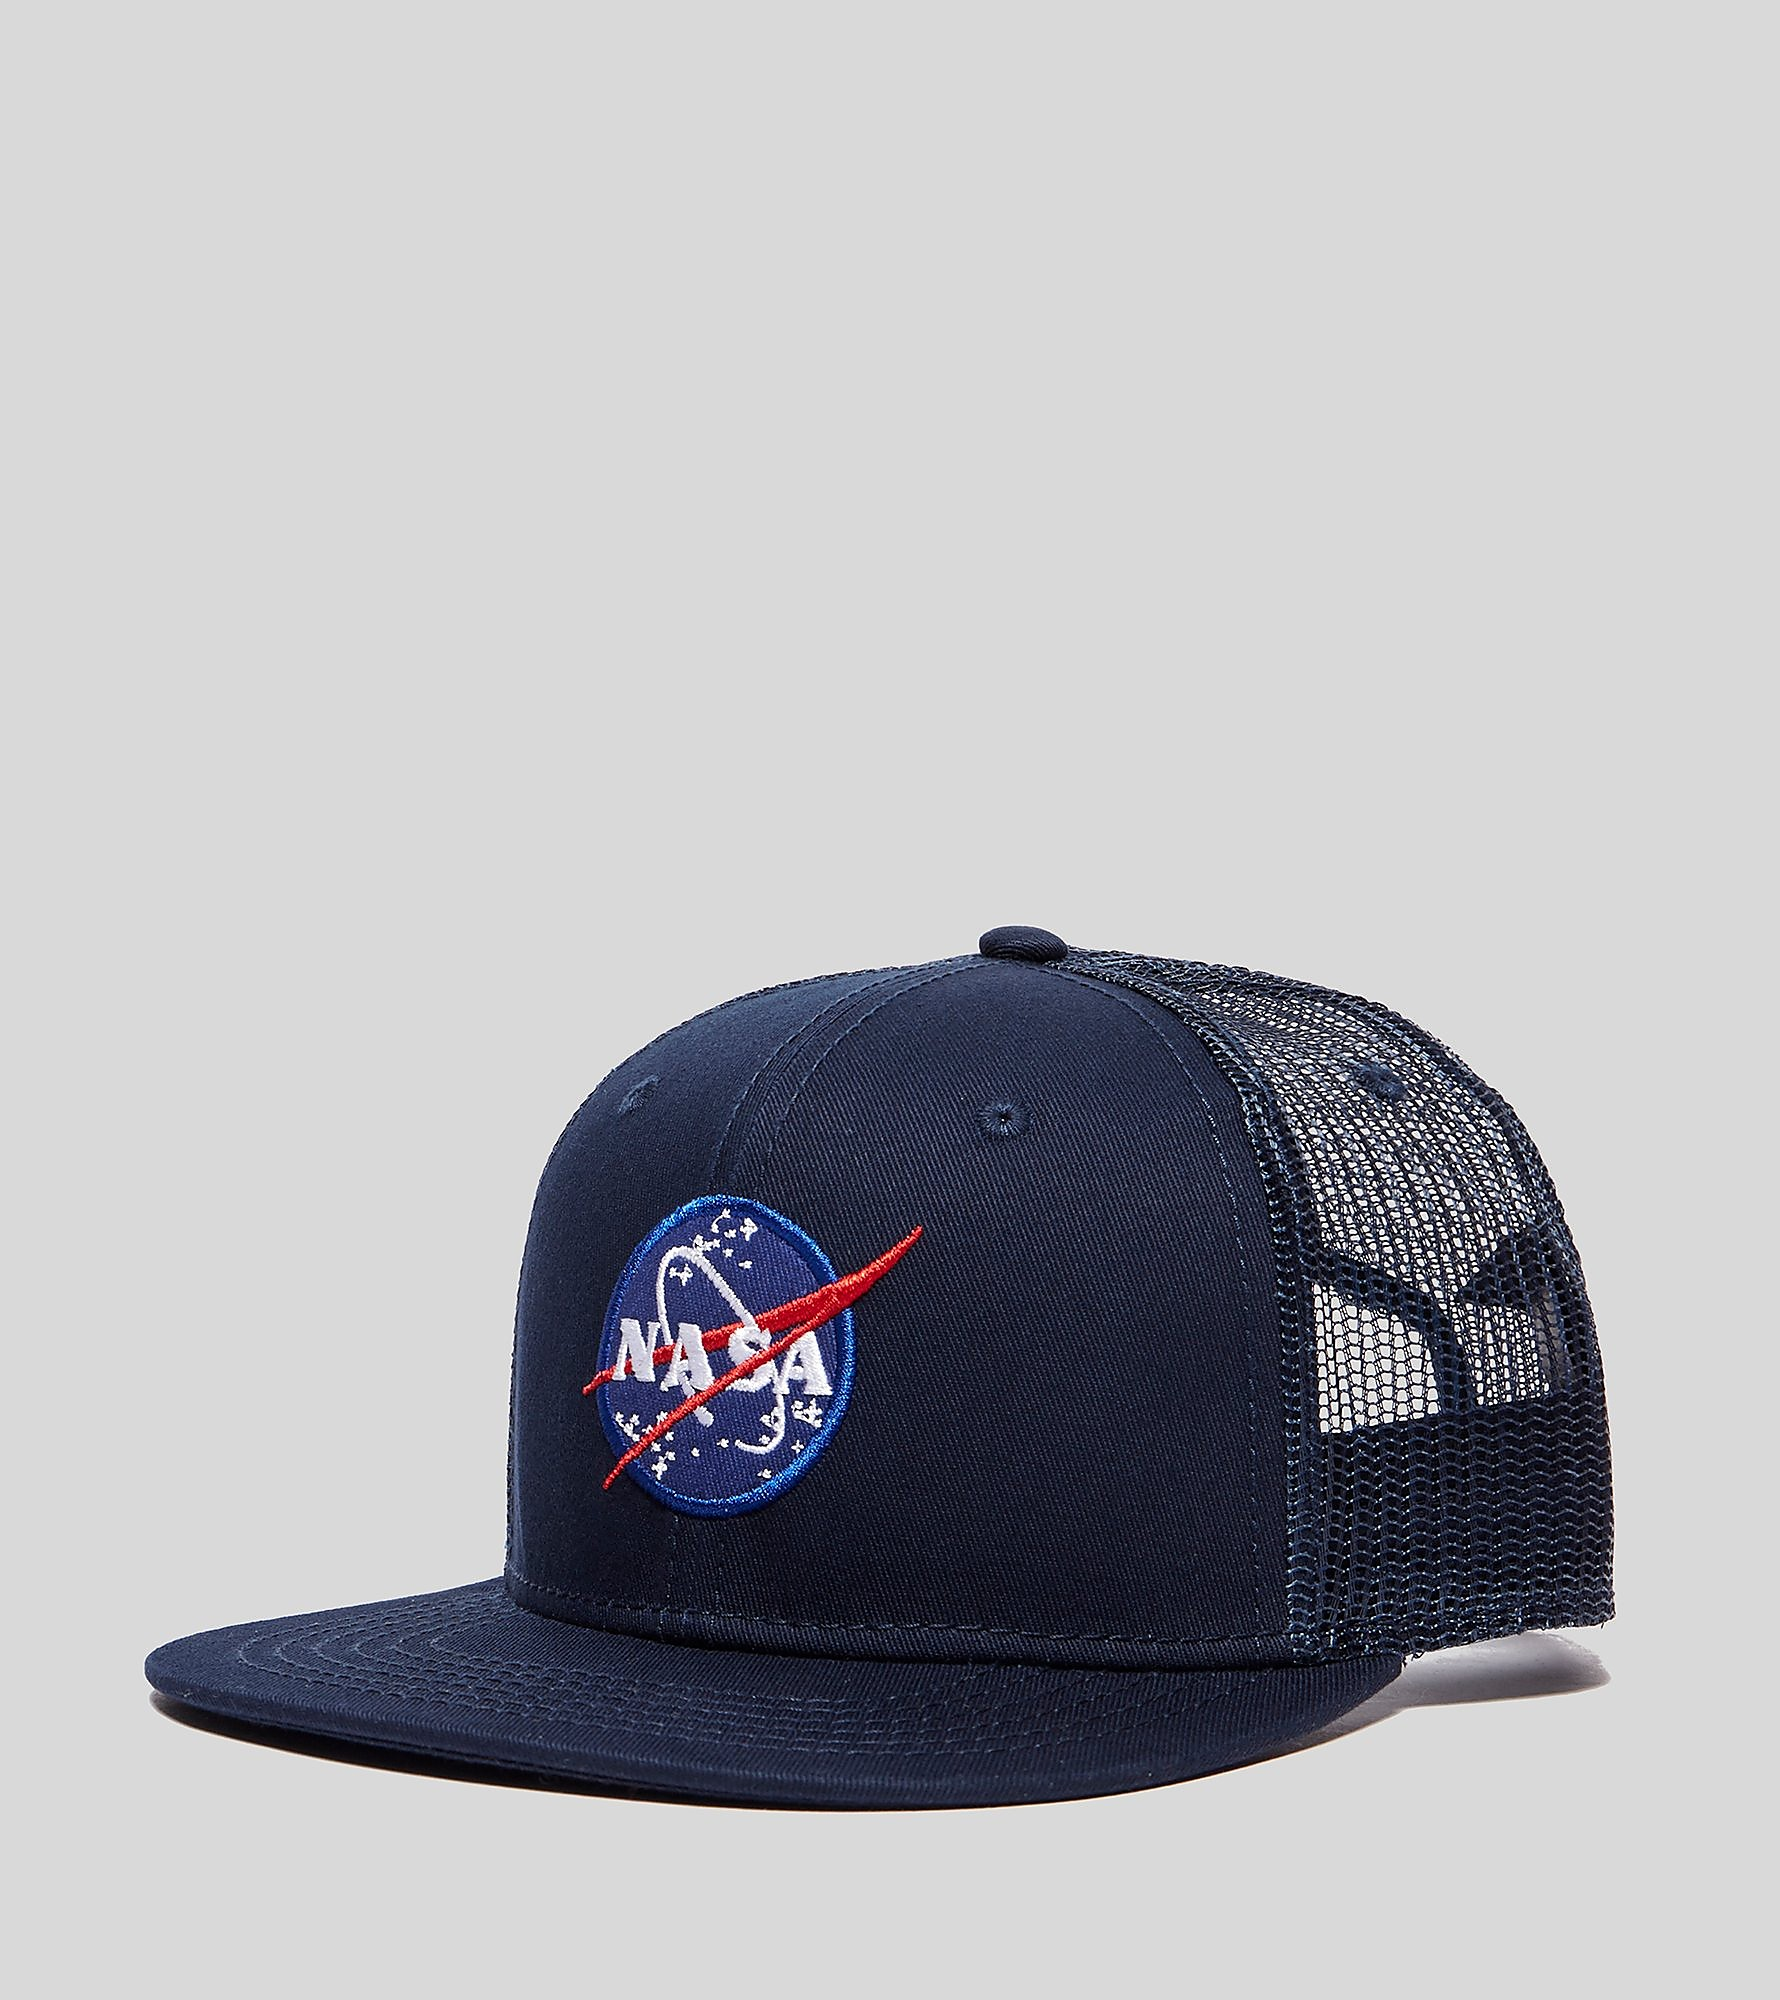 Alpha Industries Nasa Trucker Cap